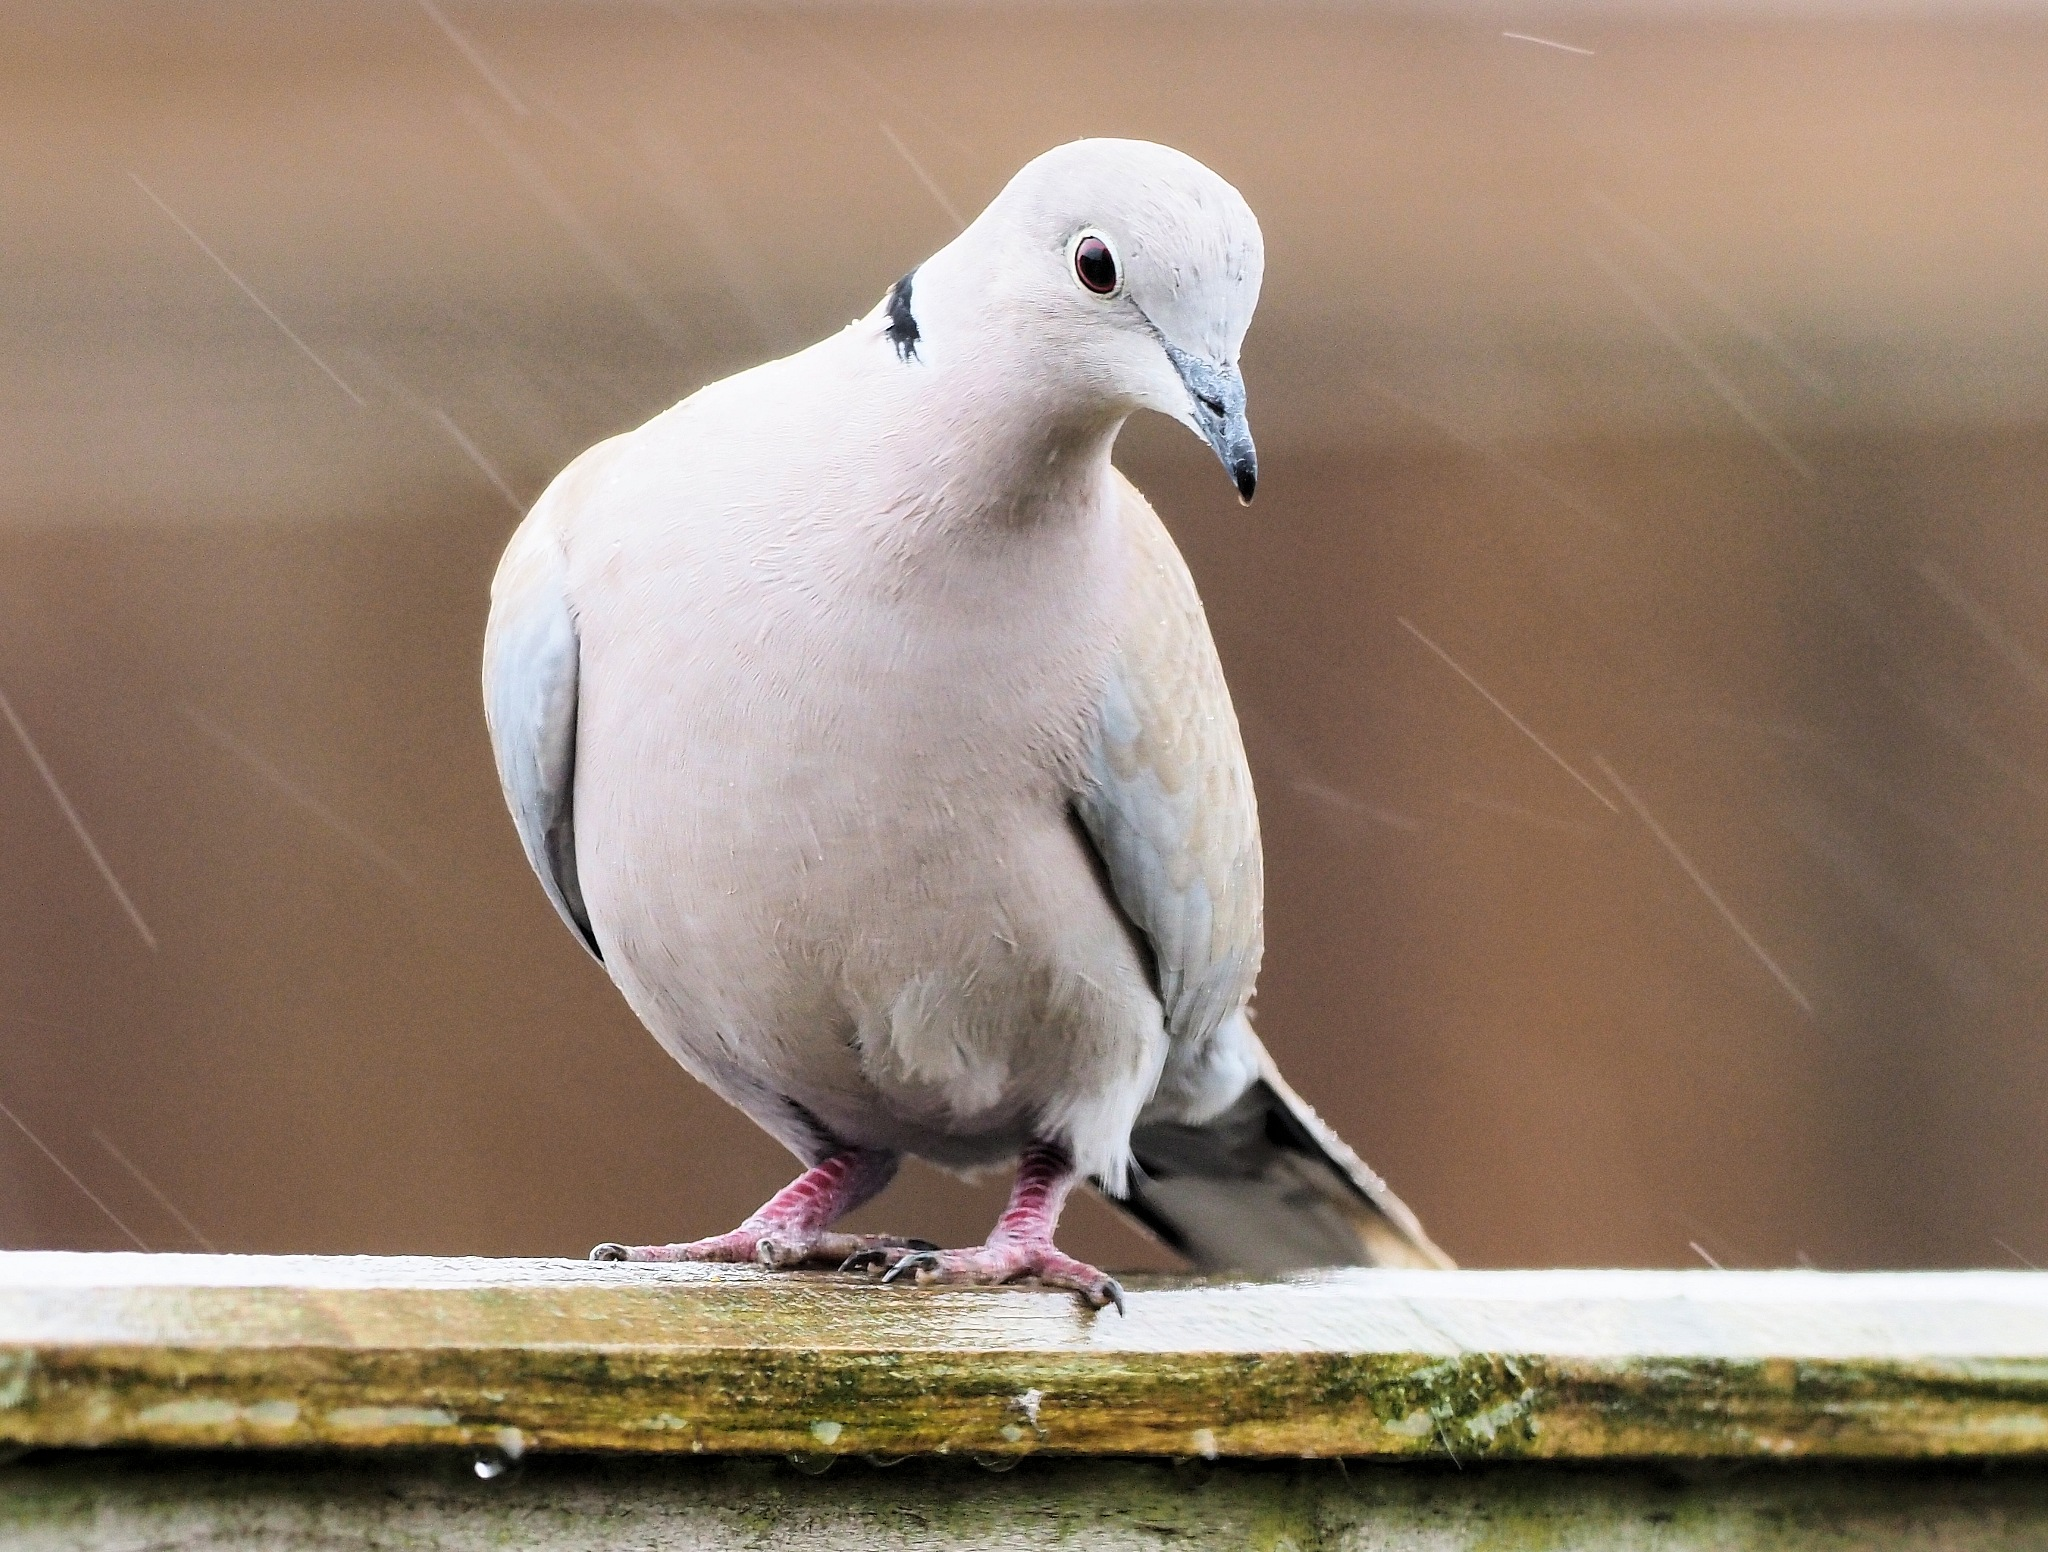 Collared Dove in the Rain by martin.b.hollands